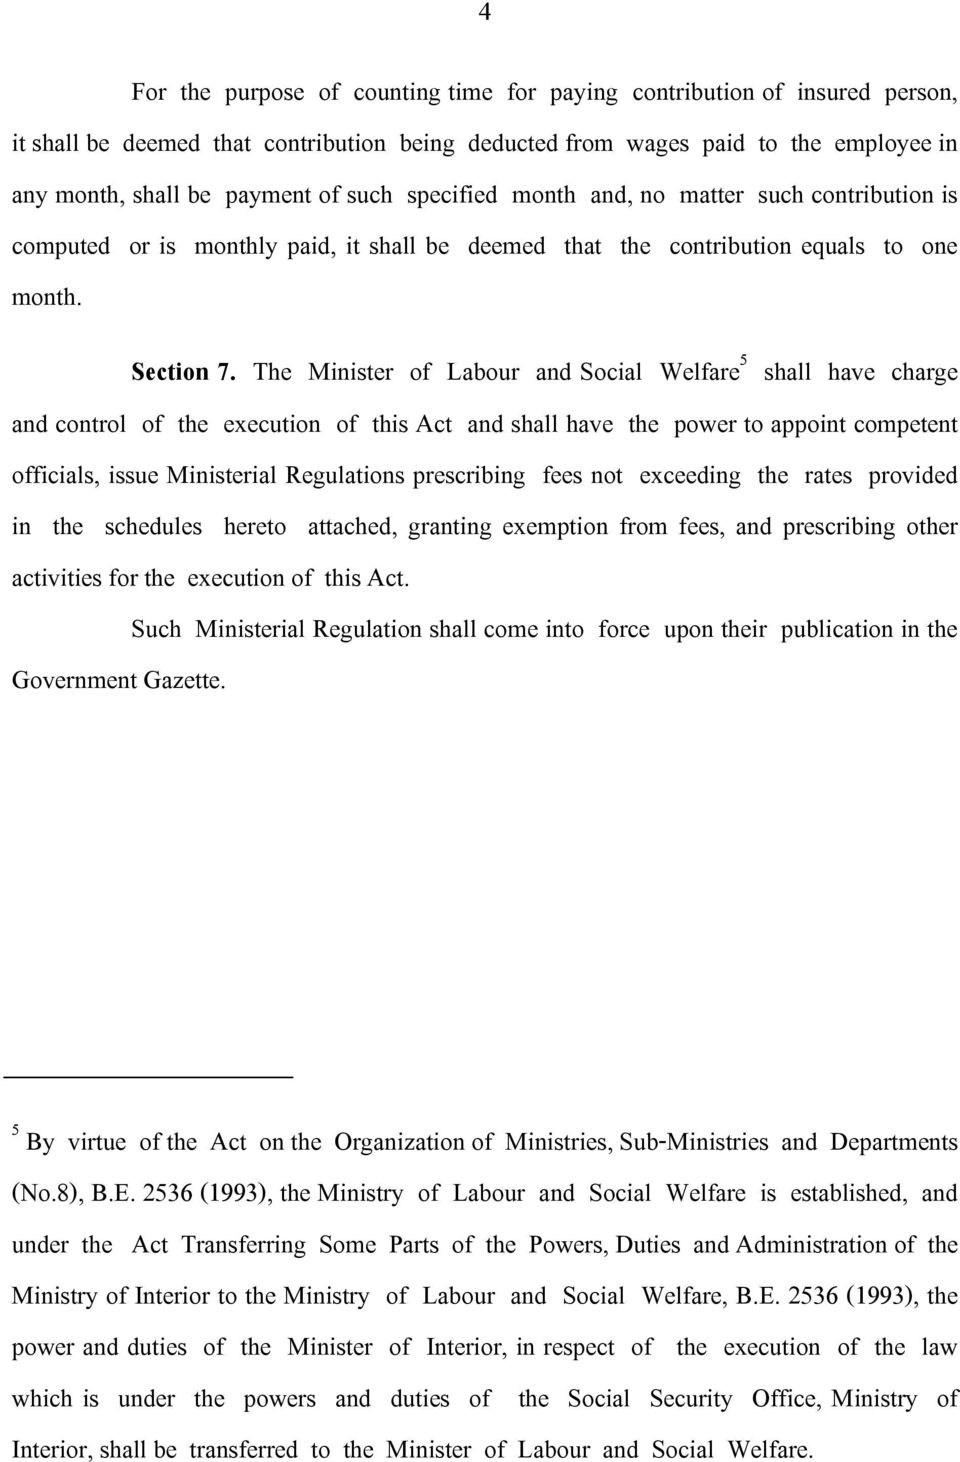 The Minister of Labour and Social Welfare 5 shall have charge and control of the execution of this Act and shall have the power to appoint competent officials, issue Ministerial Regulations